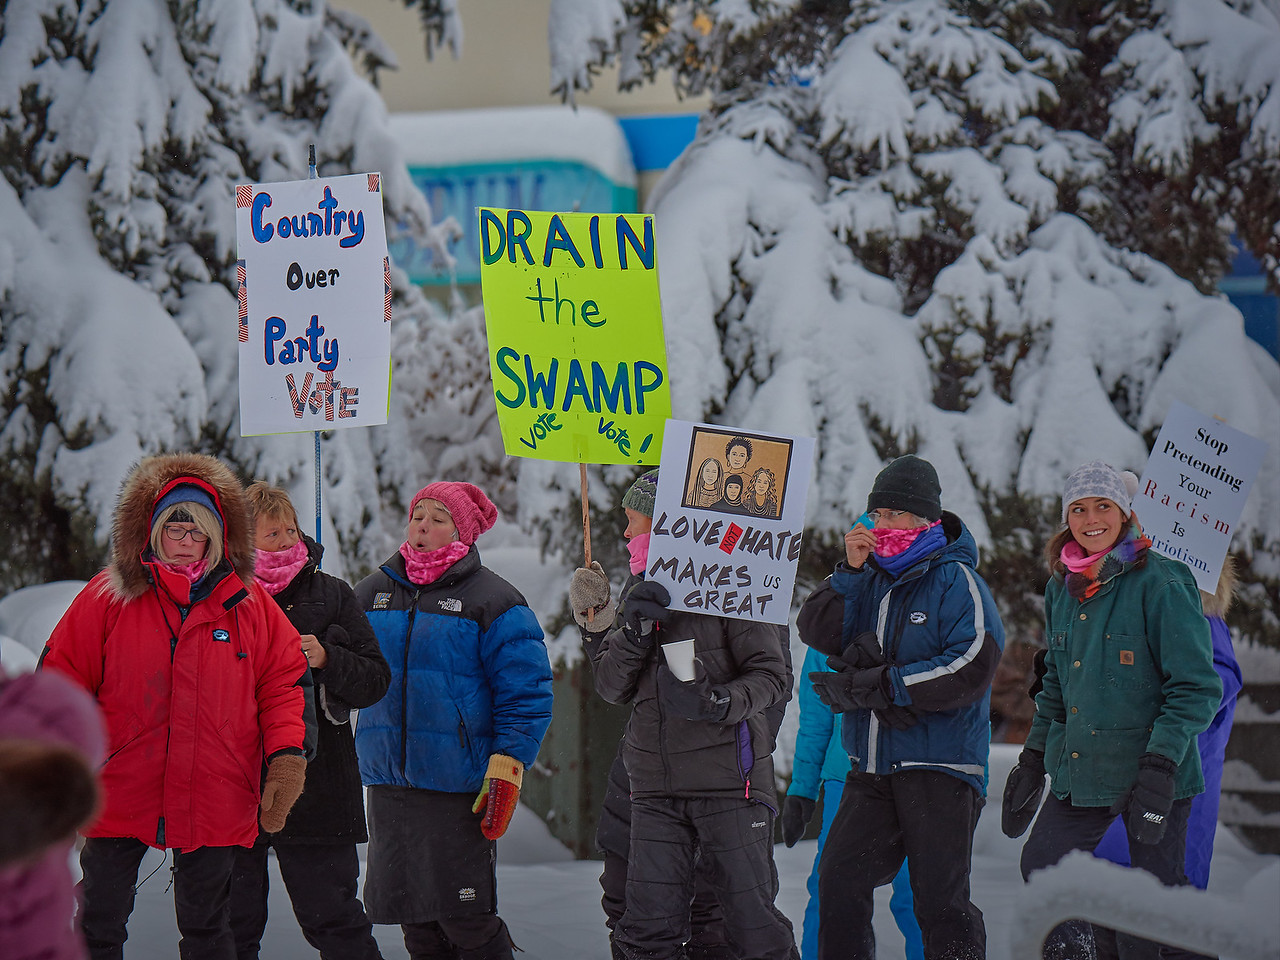 A small portion of the roughly 400-strong group of protesters attending the Women's March held in Fairbanks Alaska on January 20, 2018. Temperatures were just below zero Fahrenheit, and there was a fresh blanket of snow, all of which added up to a pleasant winter's day by the standards of this town.